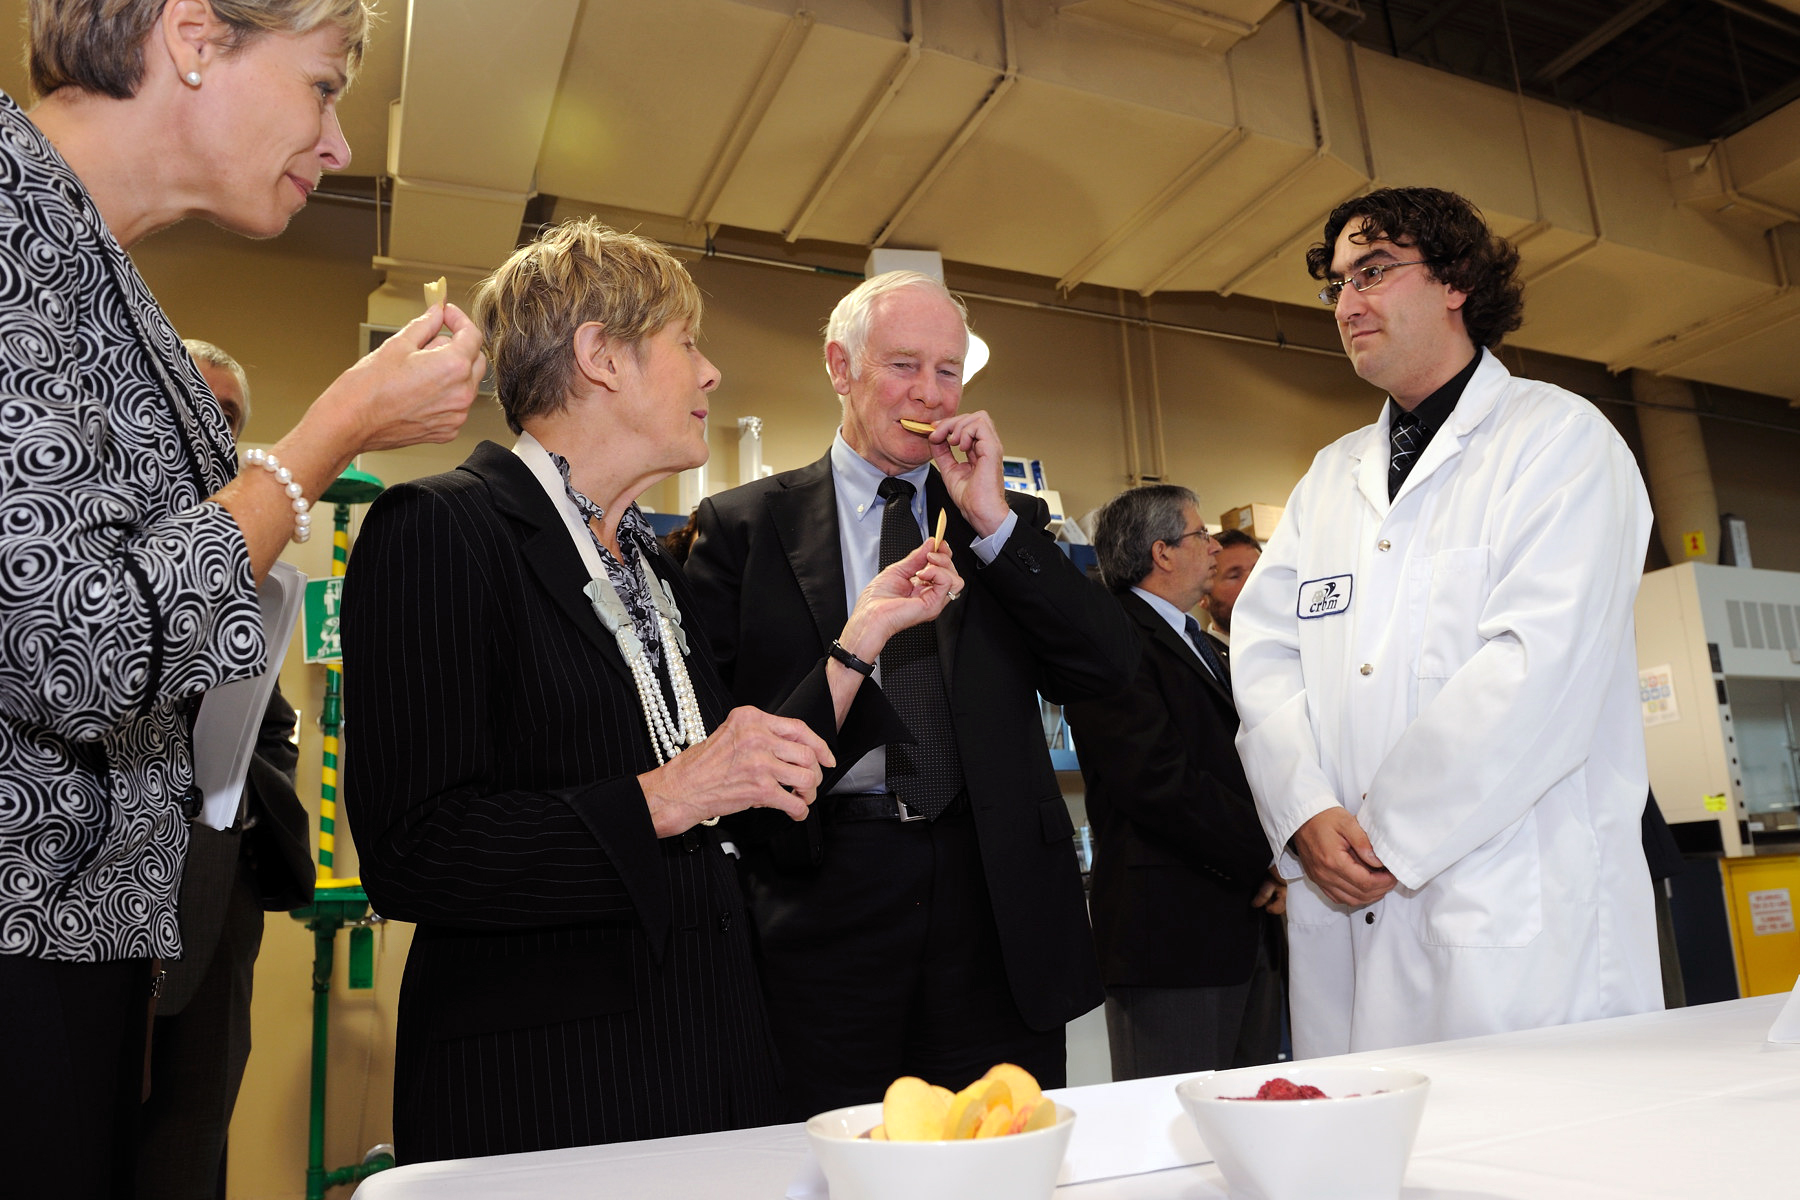 Their Excellencies visited the Marine Biotechnology Research Centre (MBRC) to learn about the research conducted by the MBRC and the services it offers. Their Excellencies had the opportunity to sample dried peaches, dehydrated using a technique developed by researchers of the MBRC.